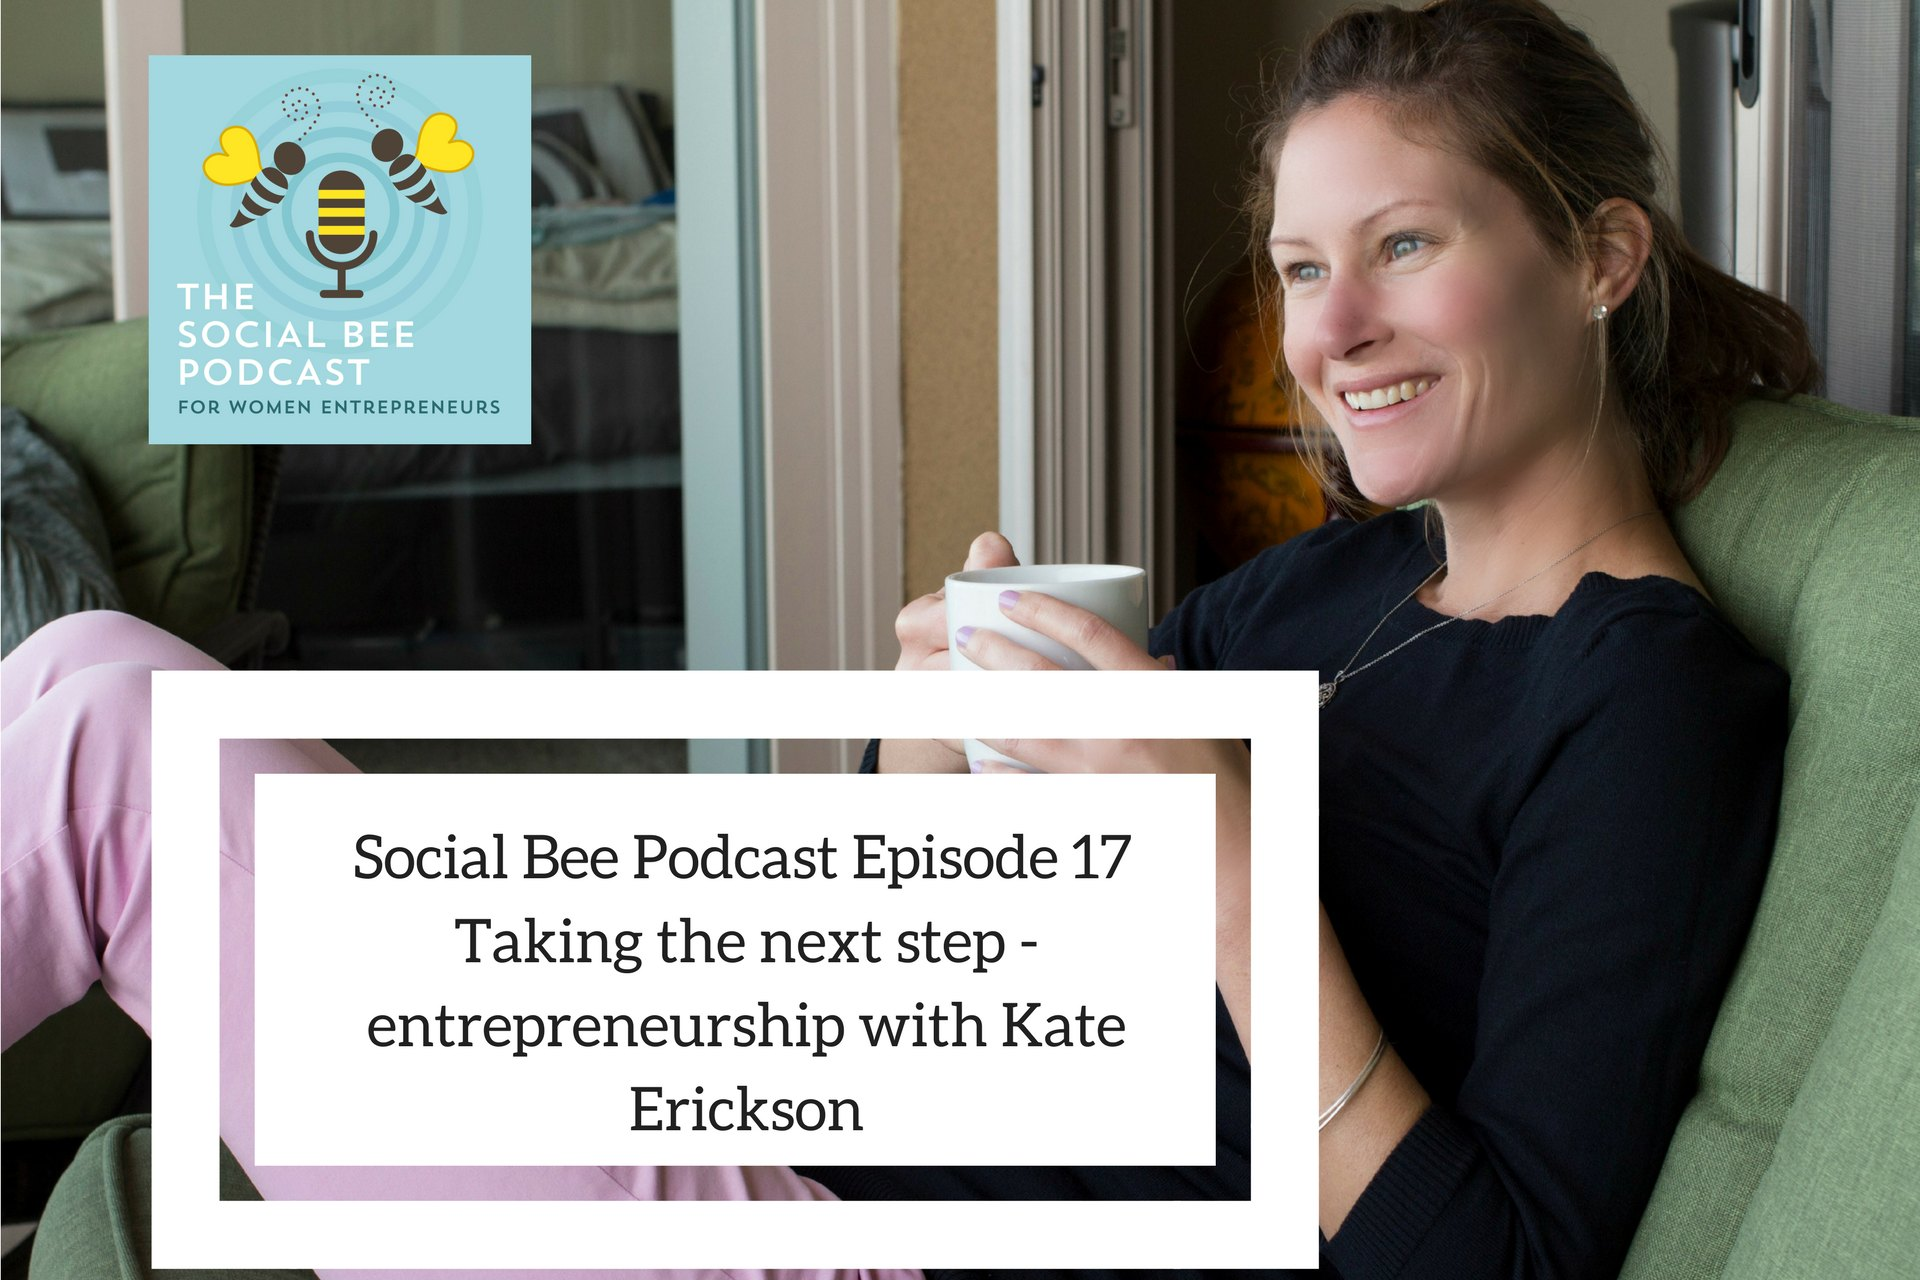 Kate Erickson, Kates Take, Social Bee Podcast, women podcaster, podcasts for women, women in business